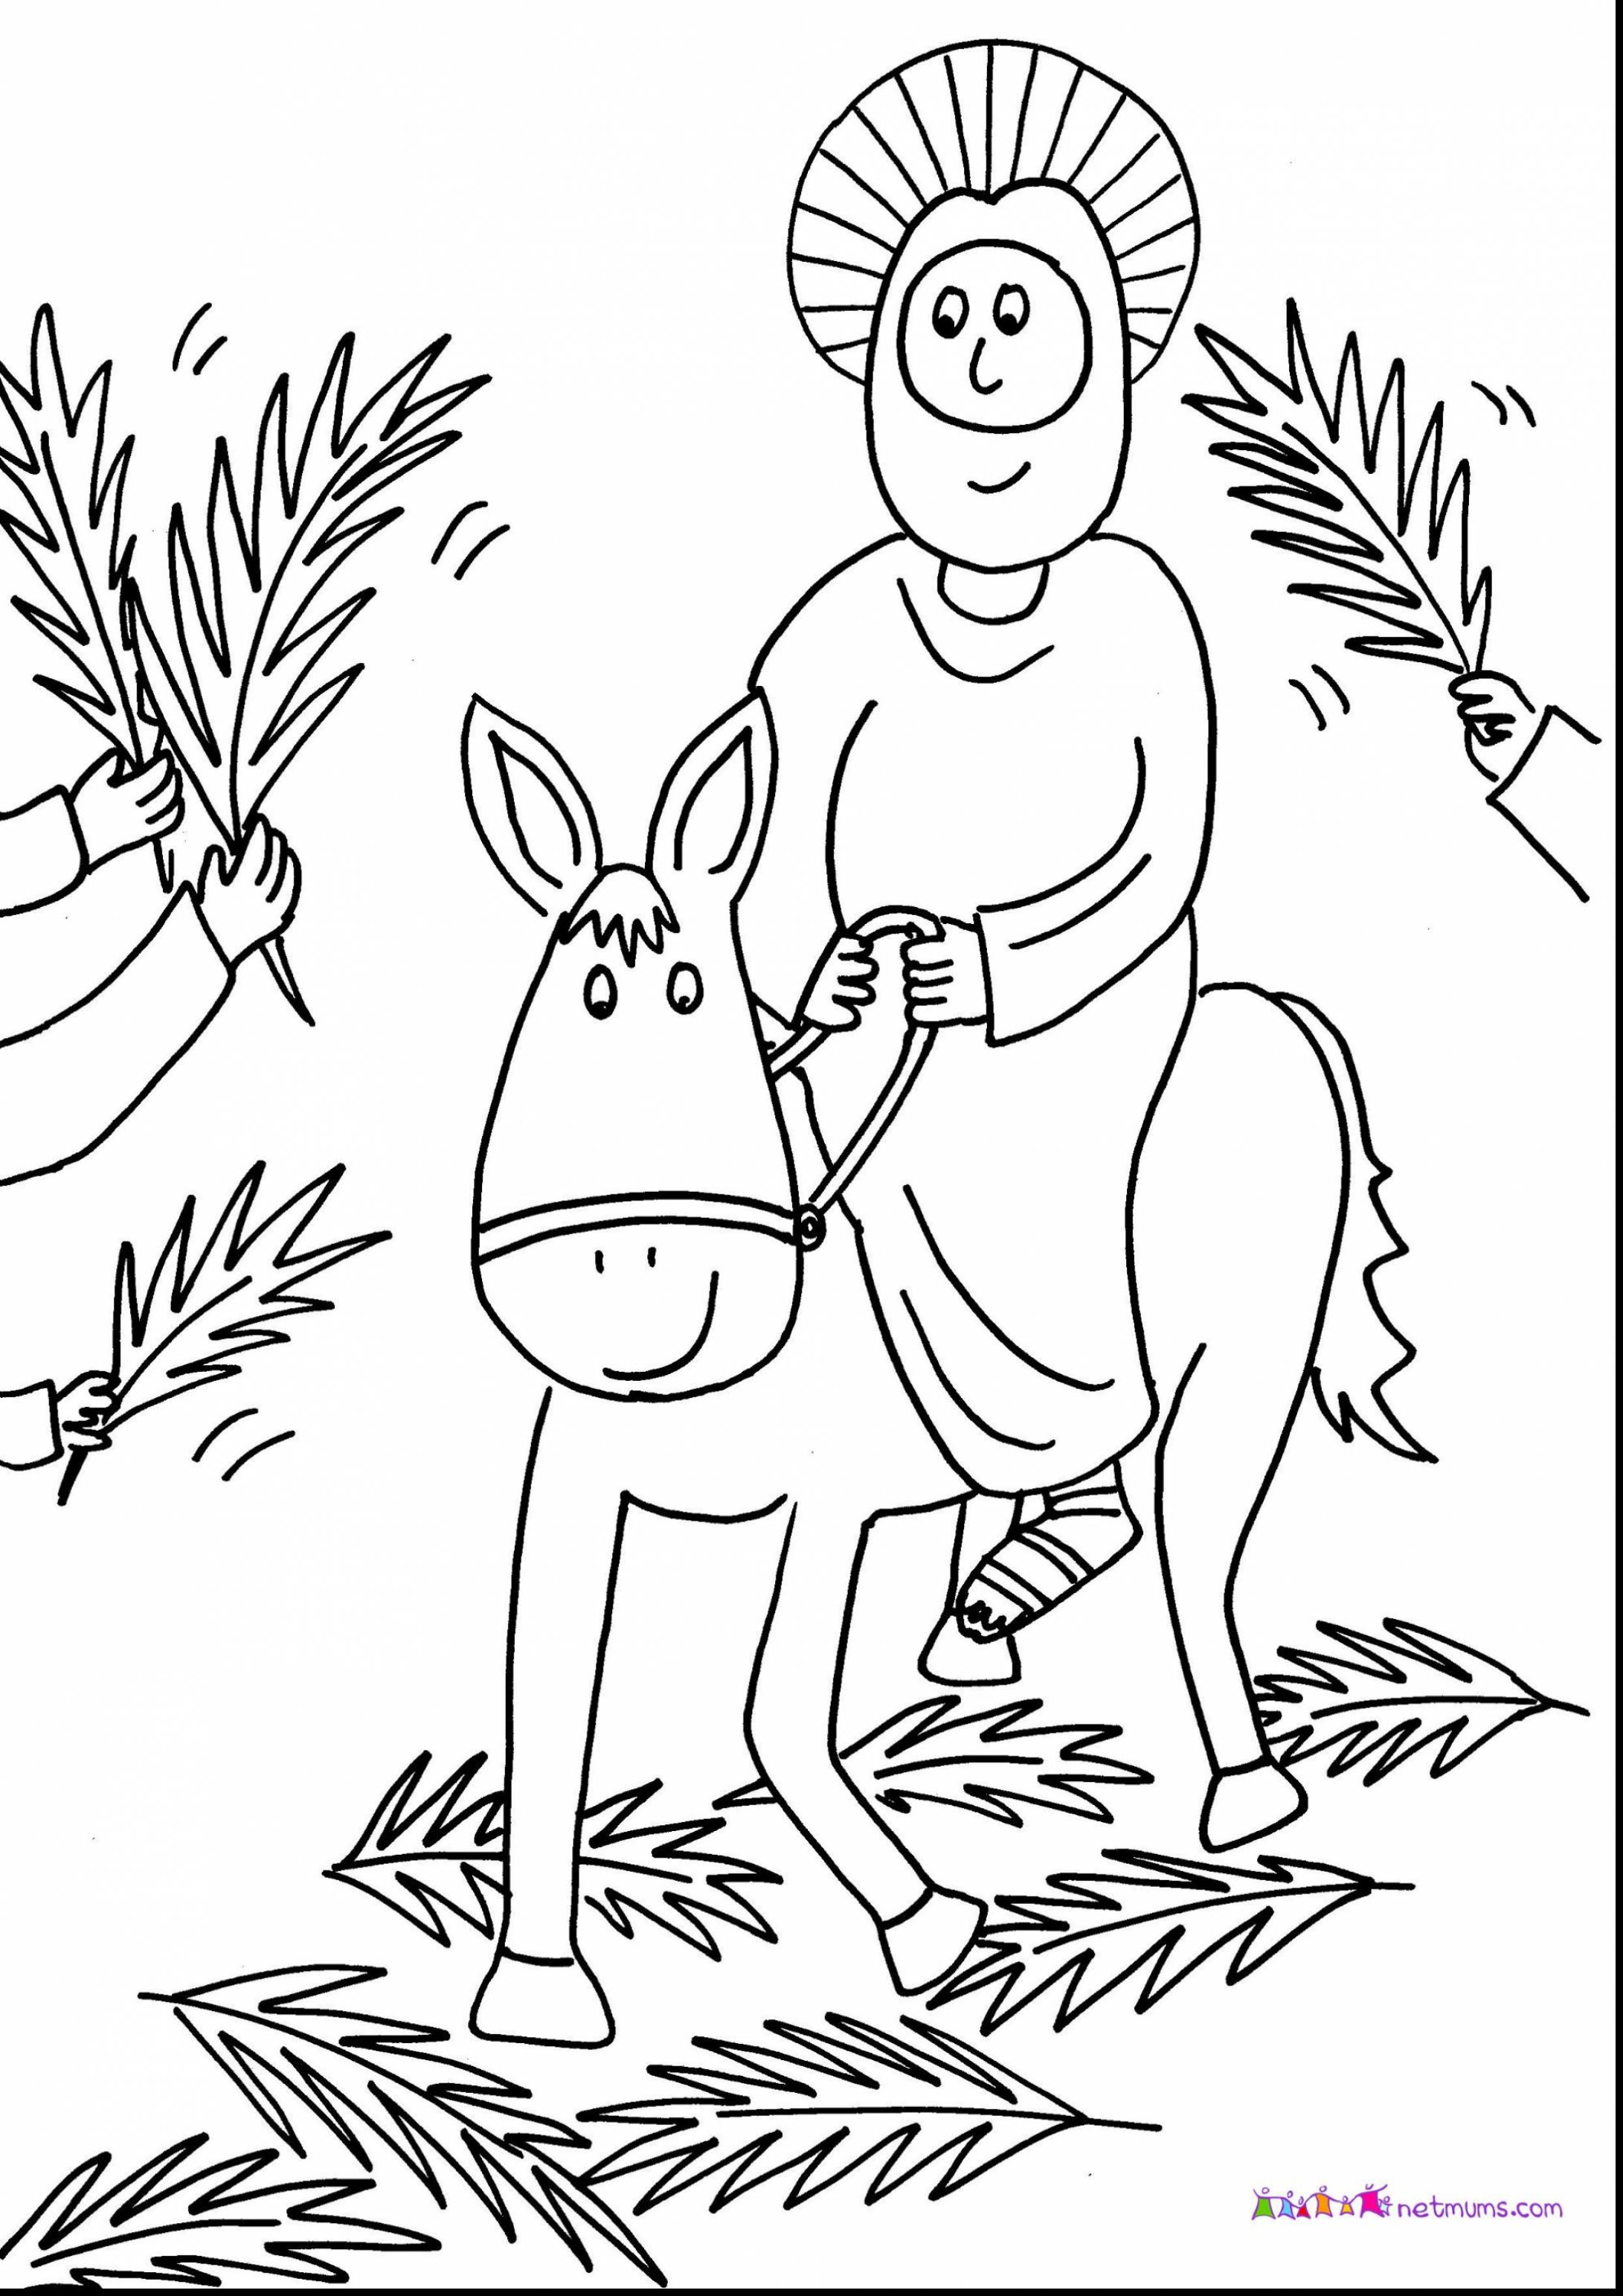 2182x3086 Sunday School Coloring Pages With Wallpaper Background Sunday